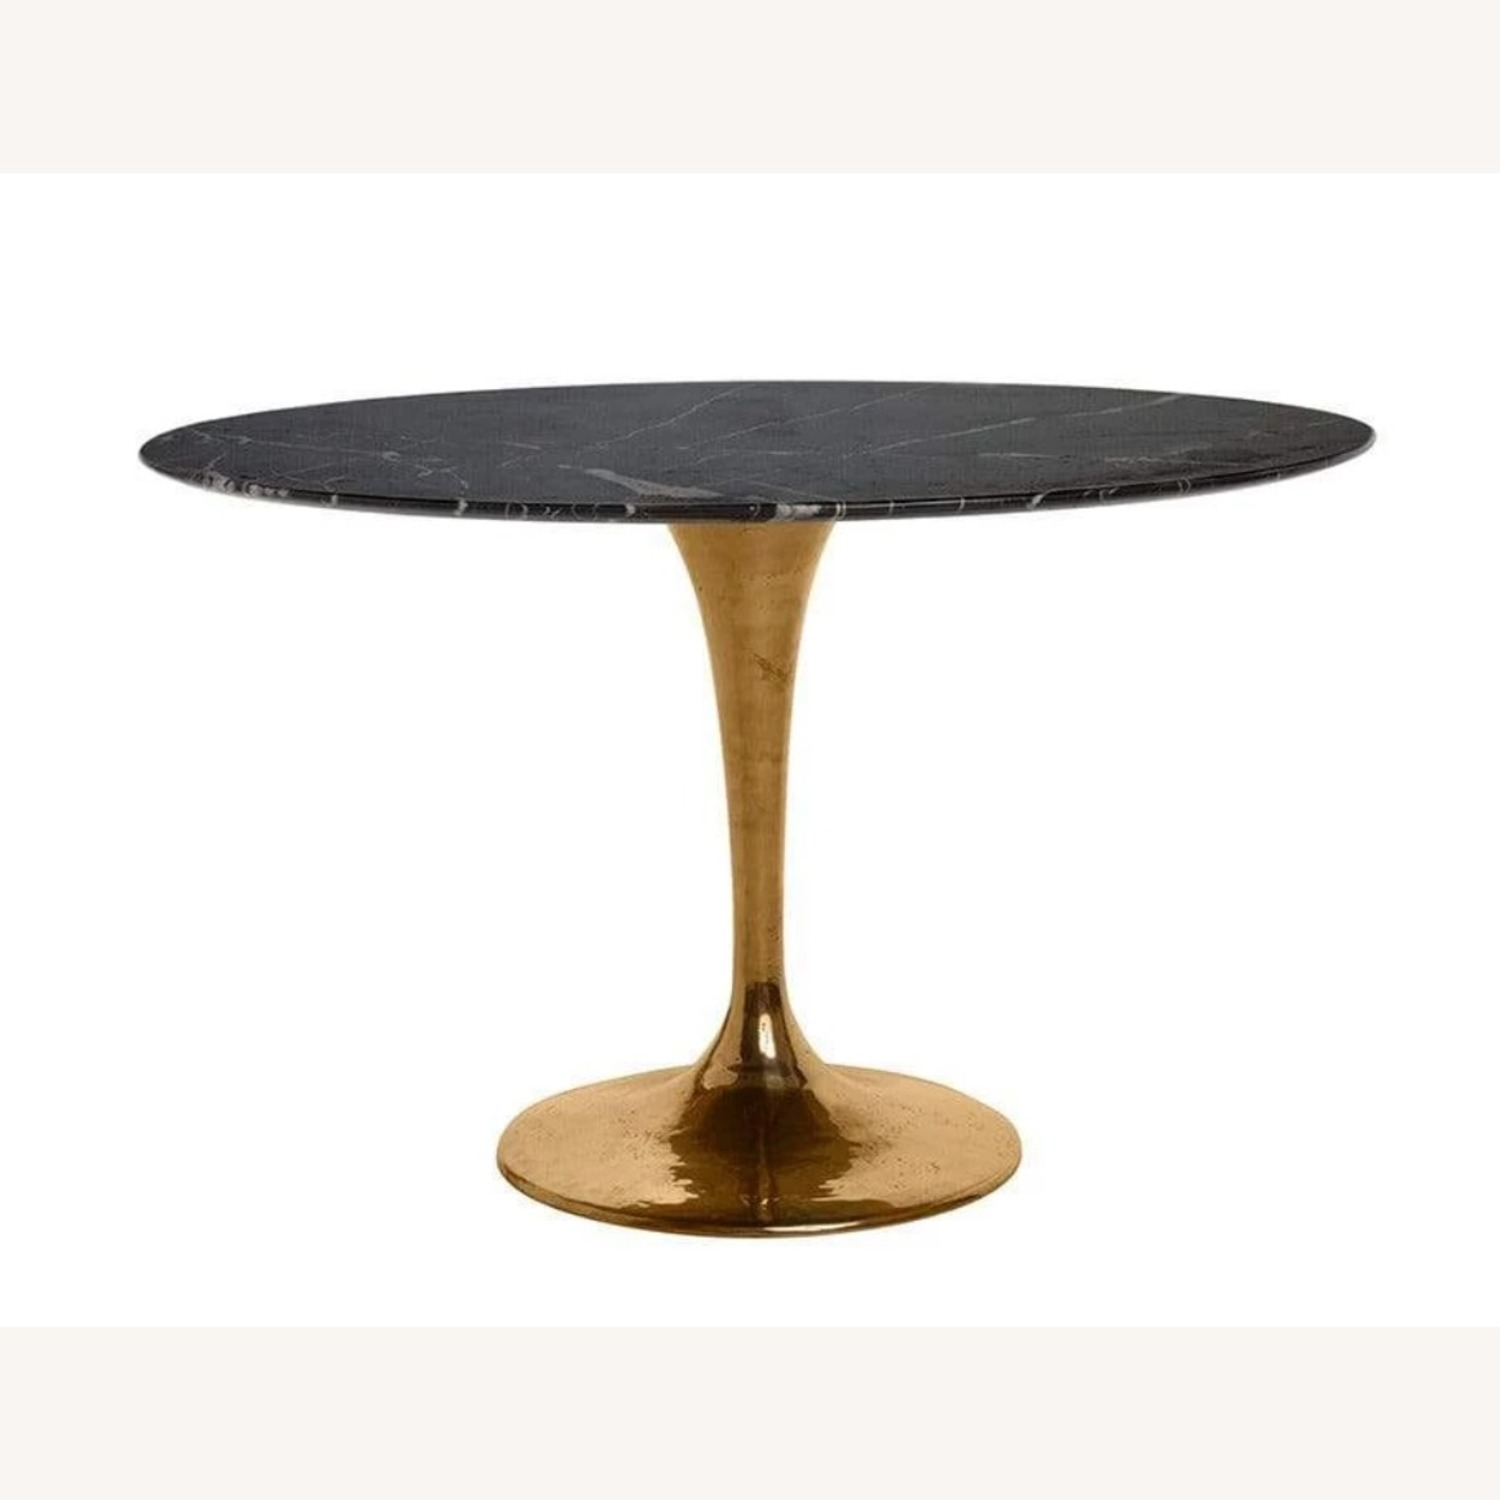 Organic Modernism Round Dining Table - image-1